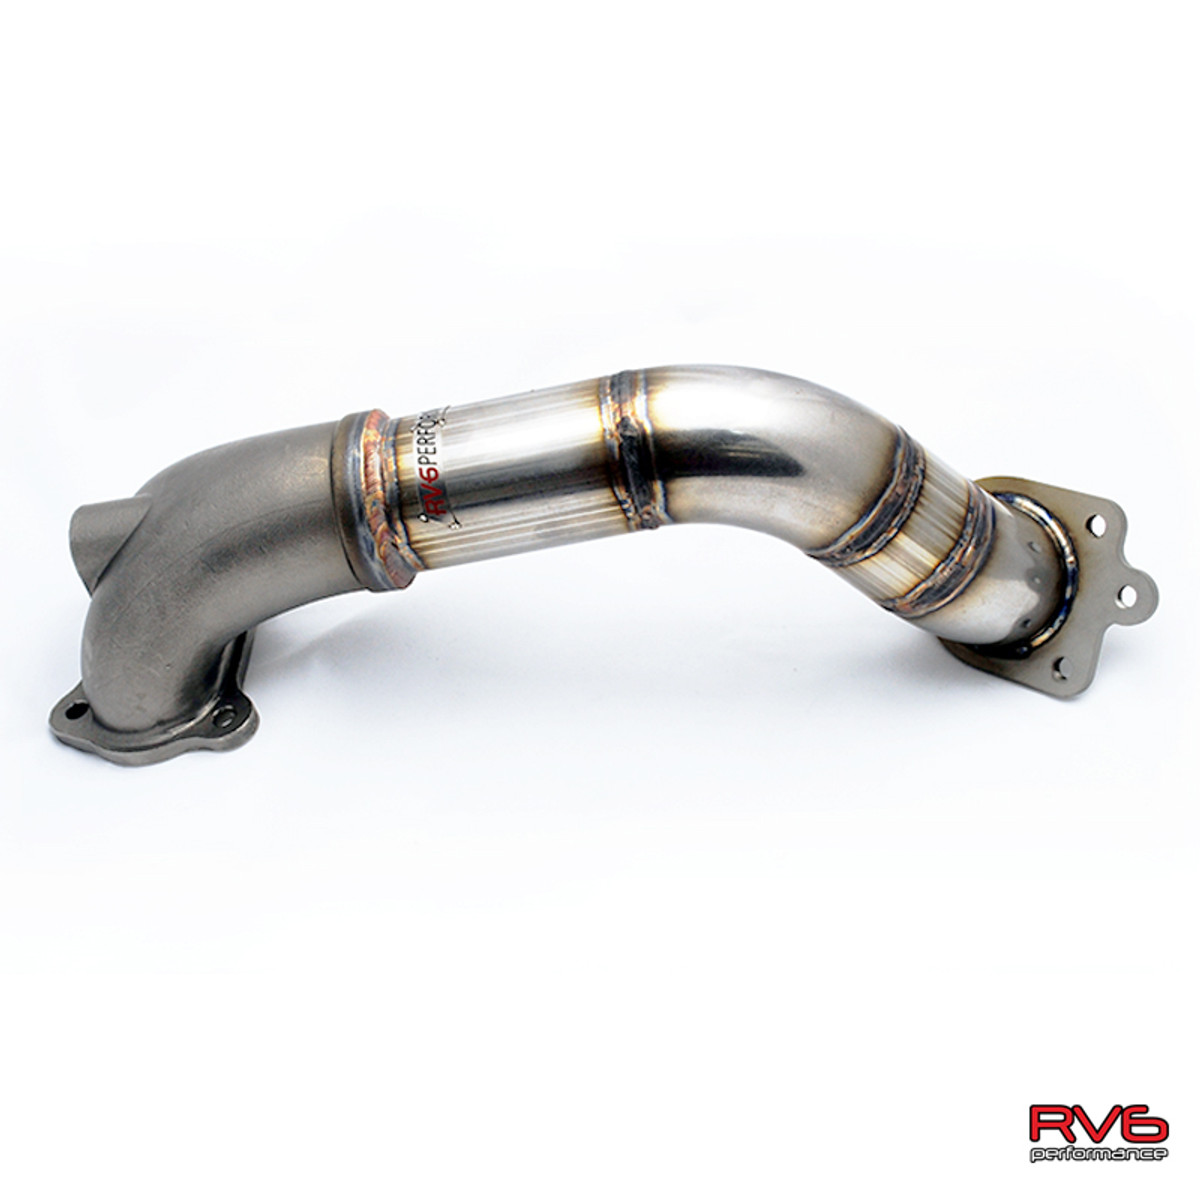 Pcd Downpipe Kit For 15 Tlx I4 2 4l Earth Dreams Engine Endless Rpm